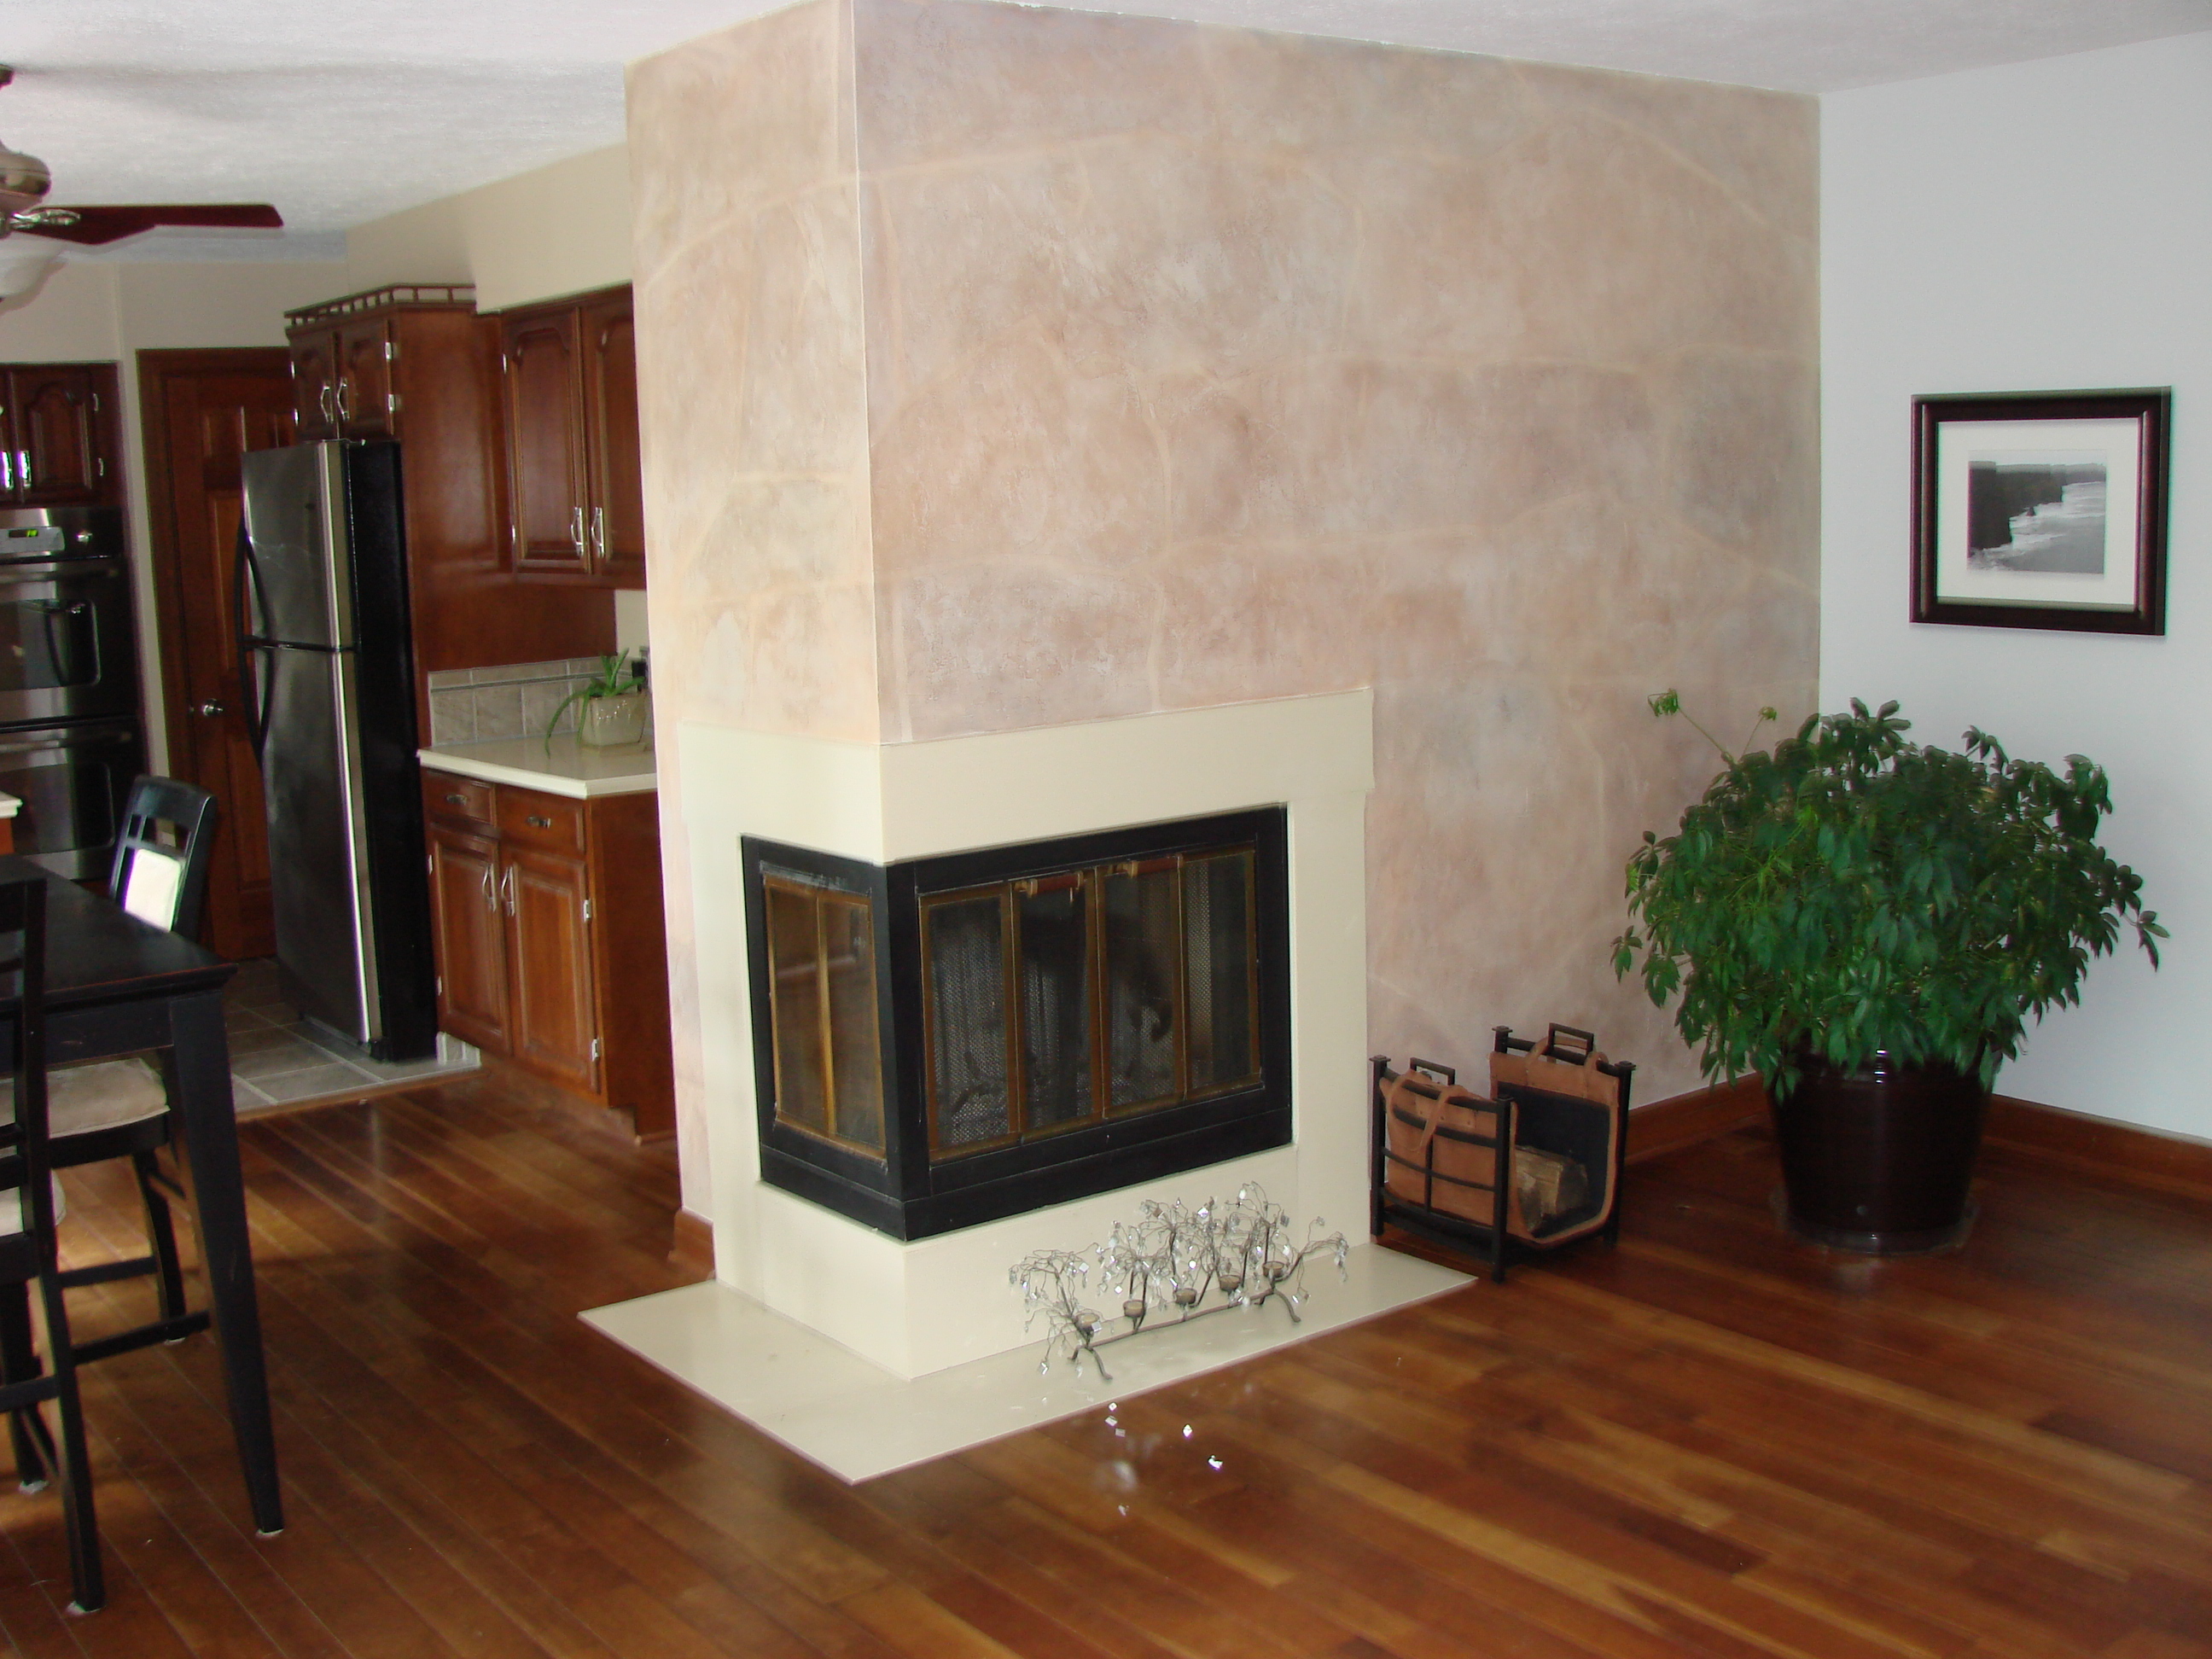 Faux Finish on fire place